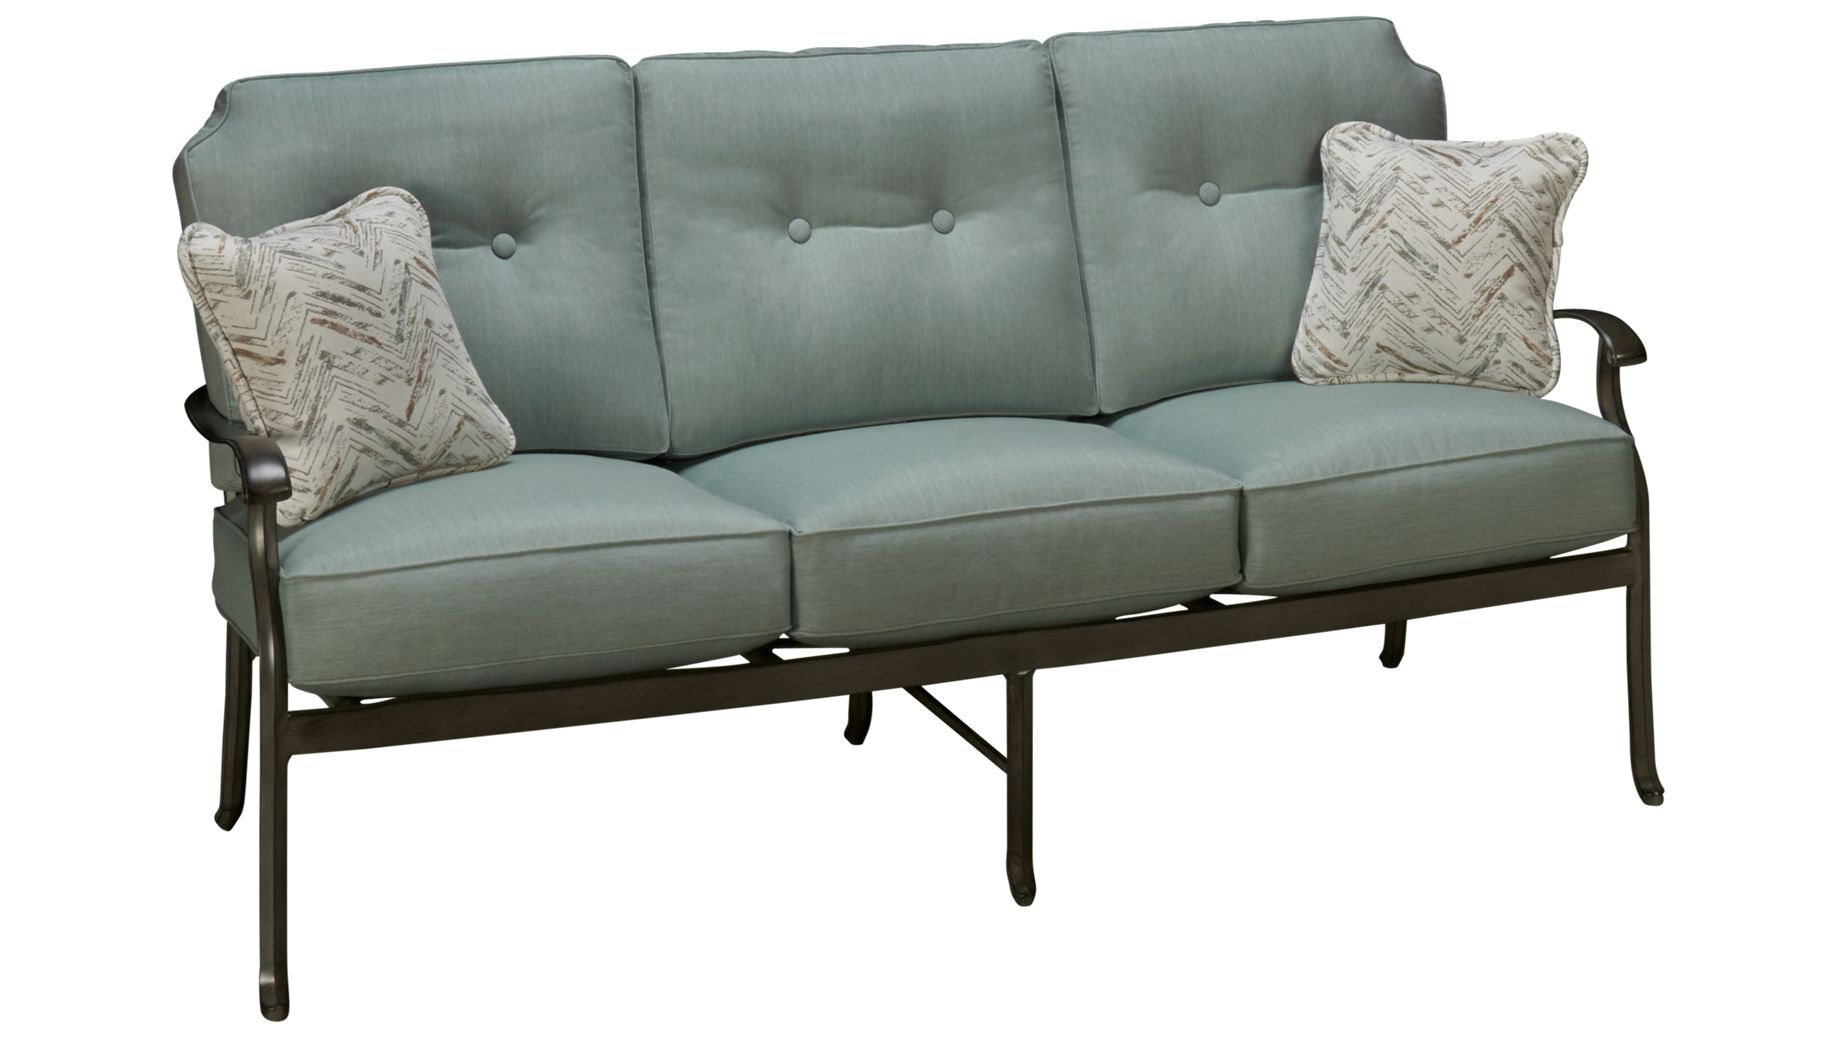 Sofas melbourne richmond hereo sofa for Agio international barbados chaise lounge